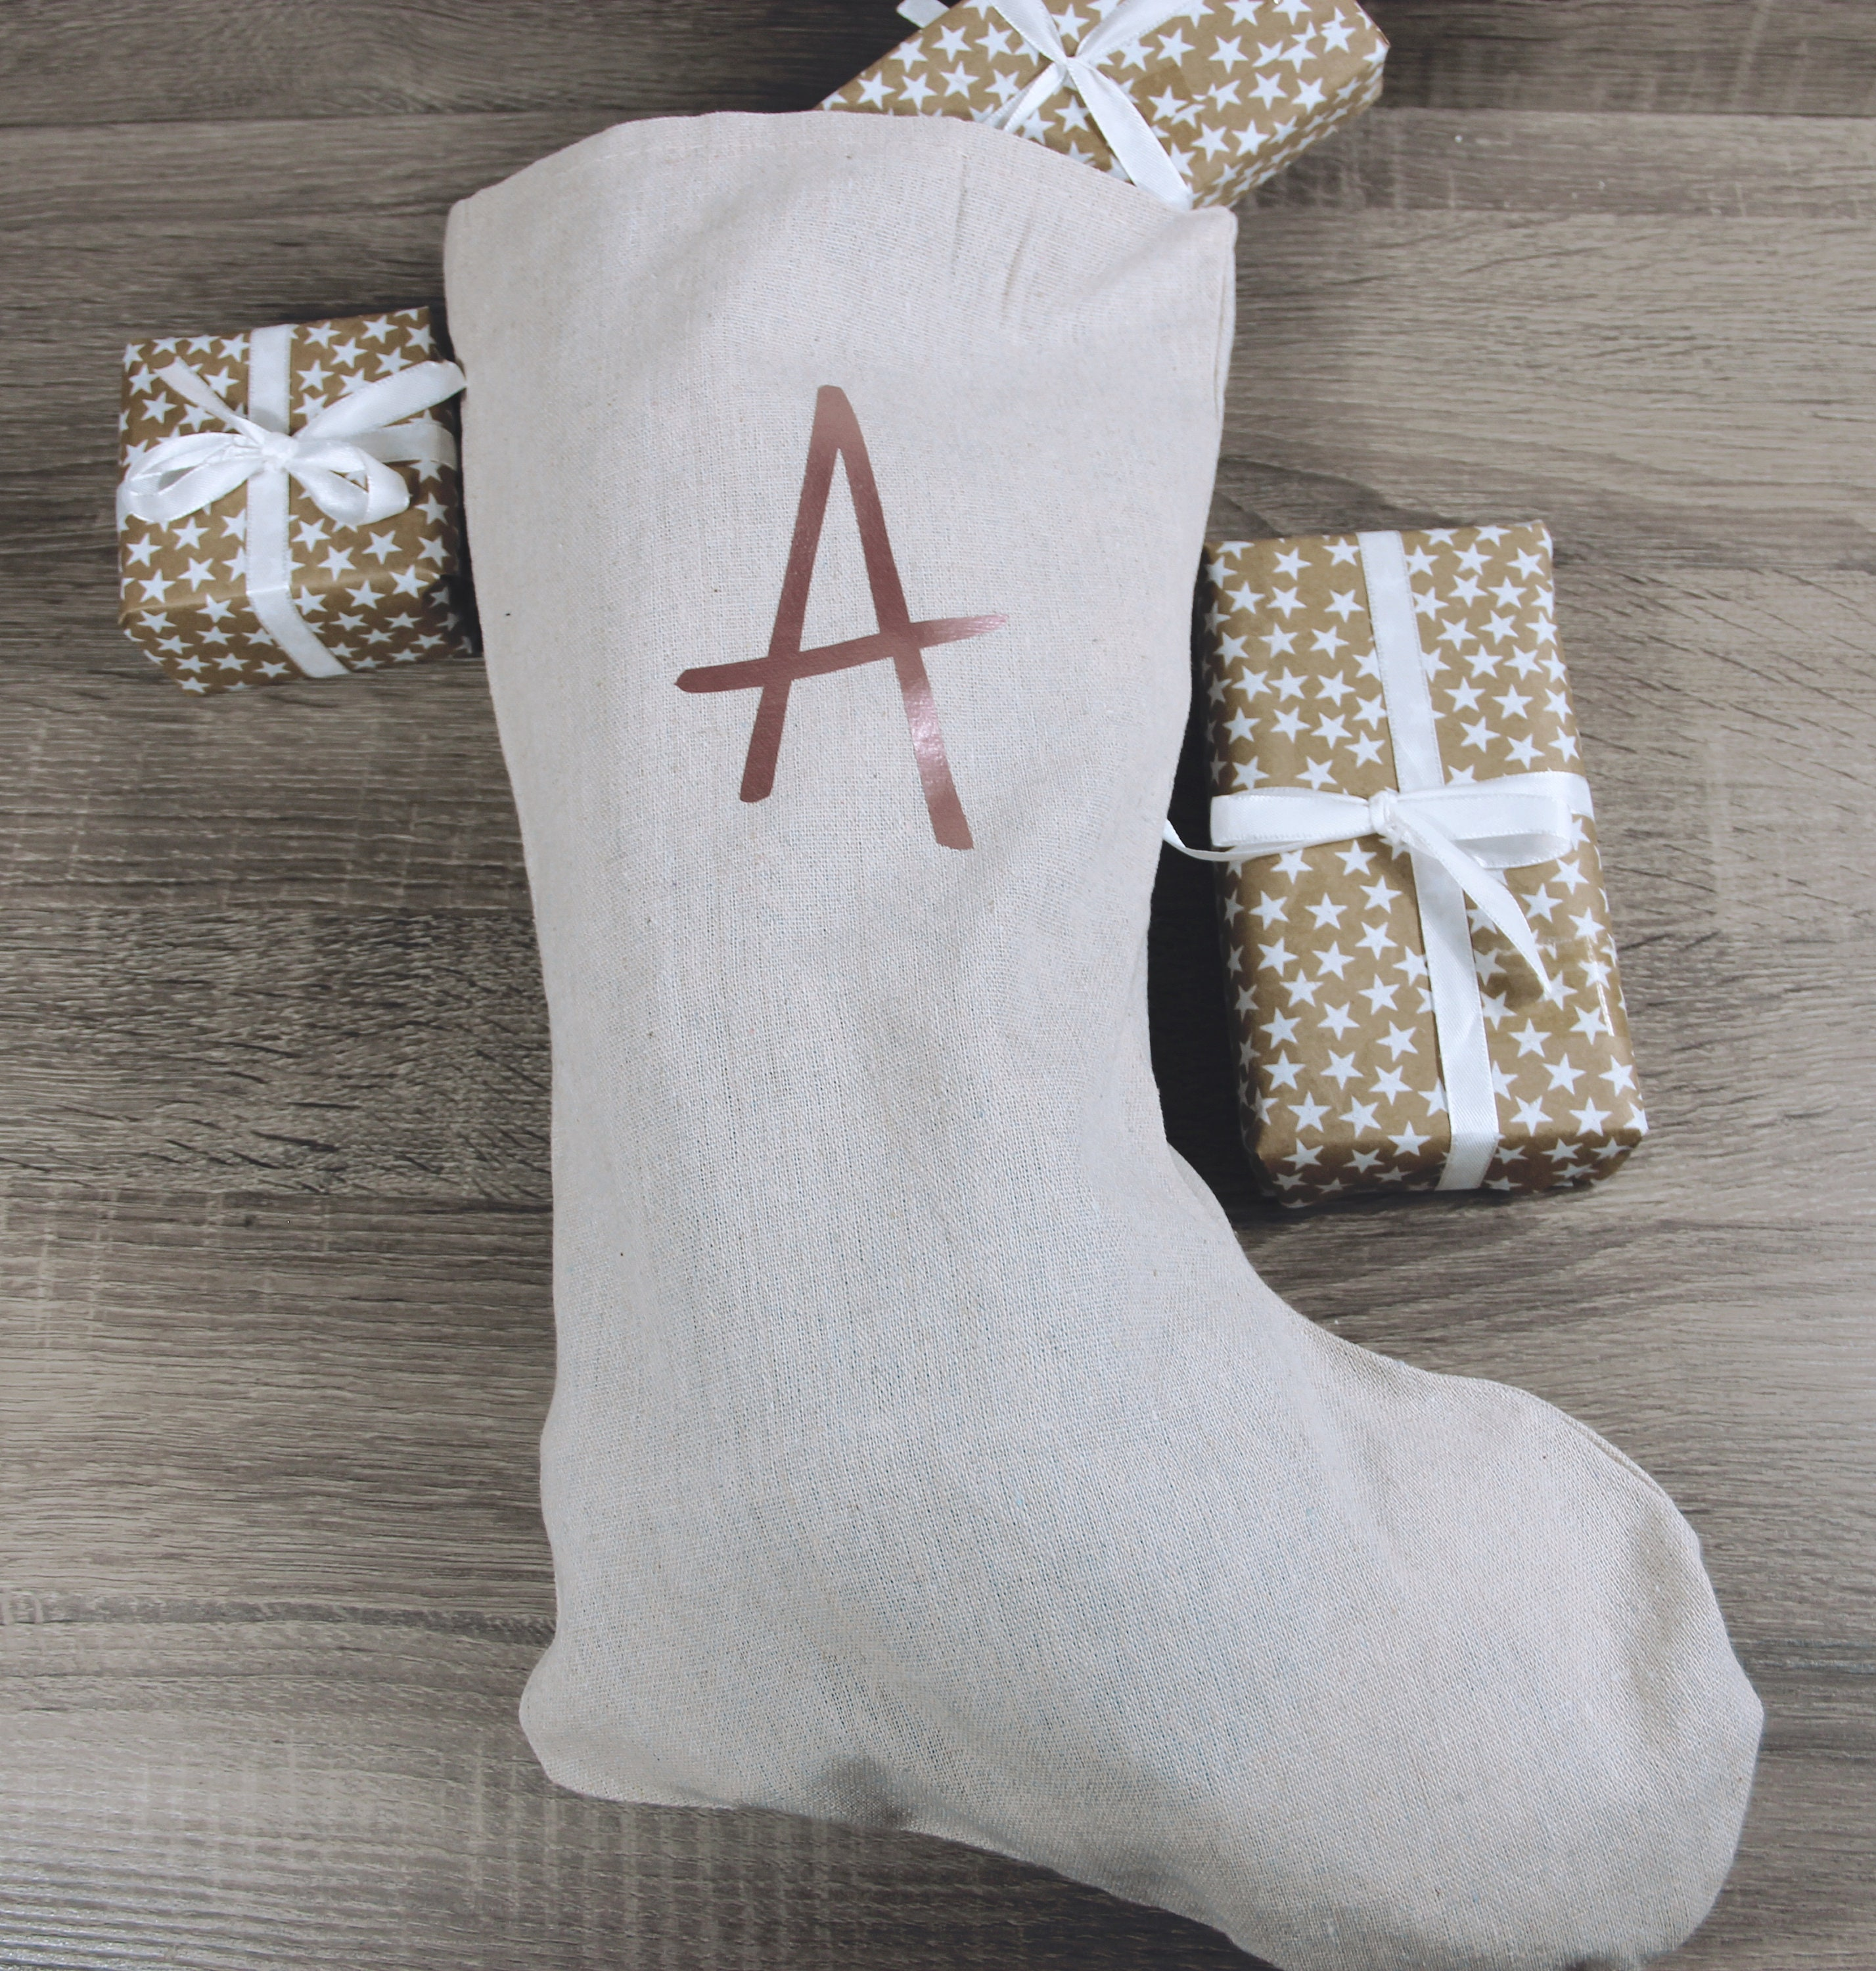 Christmas Stocking Personalised with Rose Gold Initial | Etsy